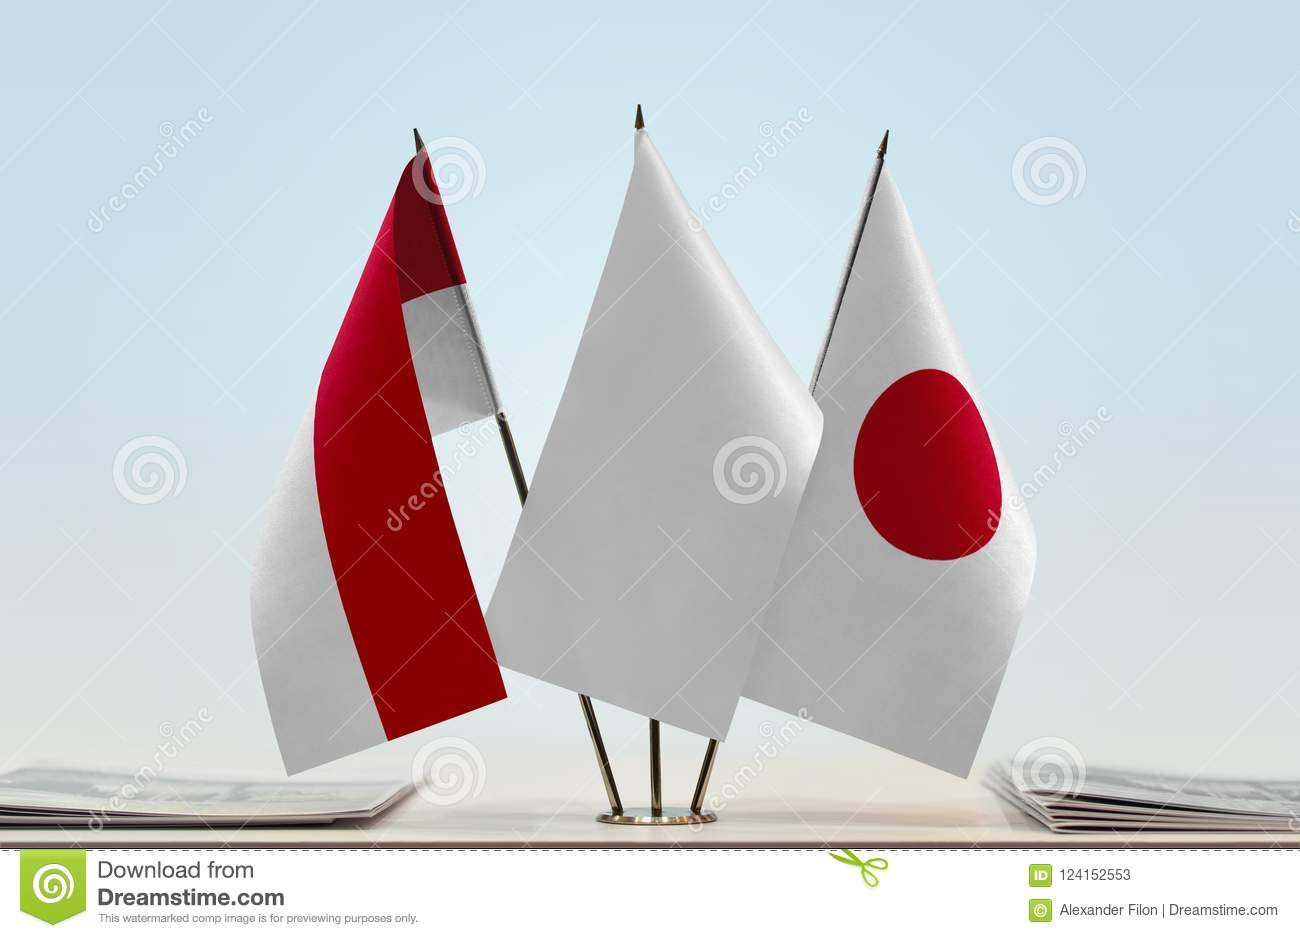 Flags of Monaco and Japan